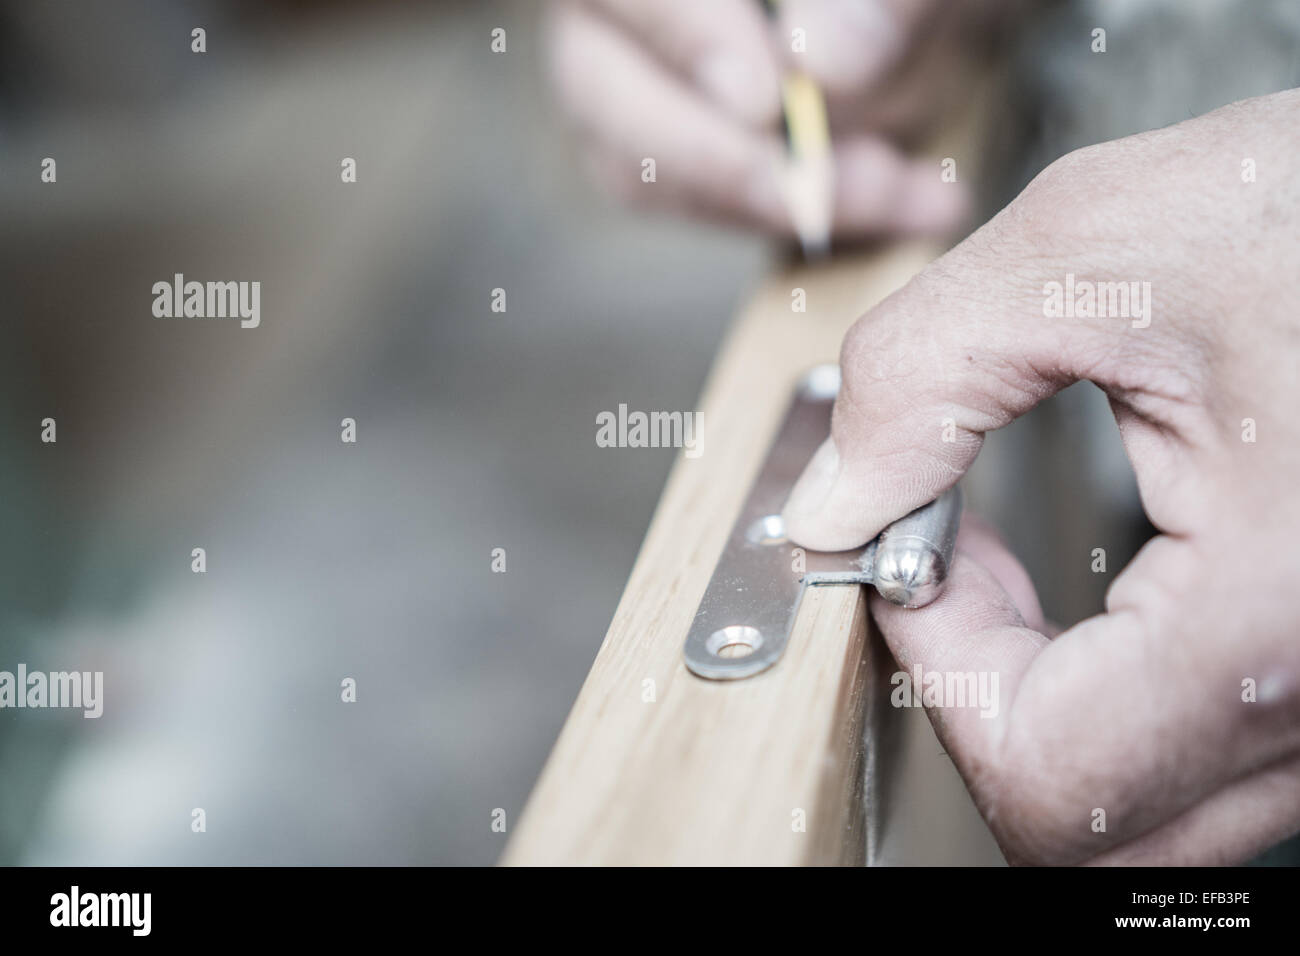 Closeup of carpenter hand with pencil working on door hinge - Stock Image